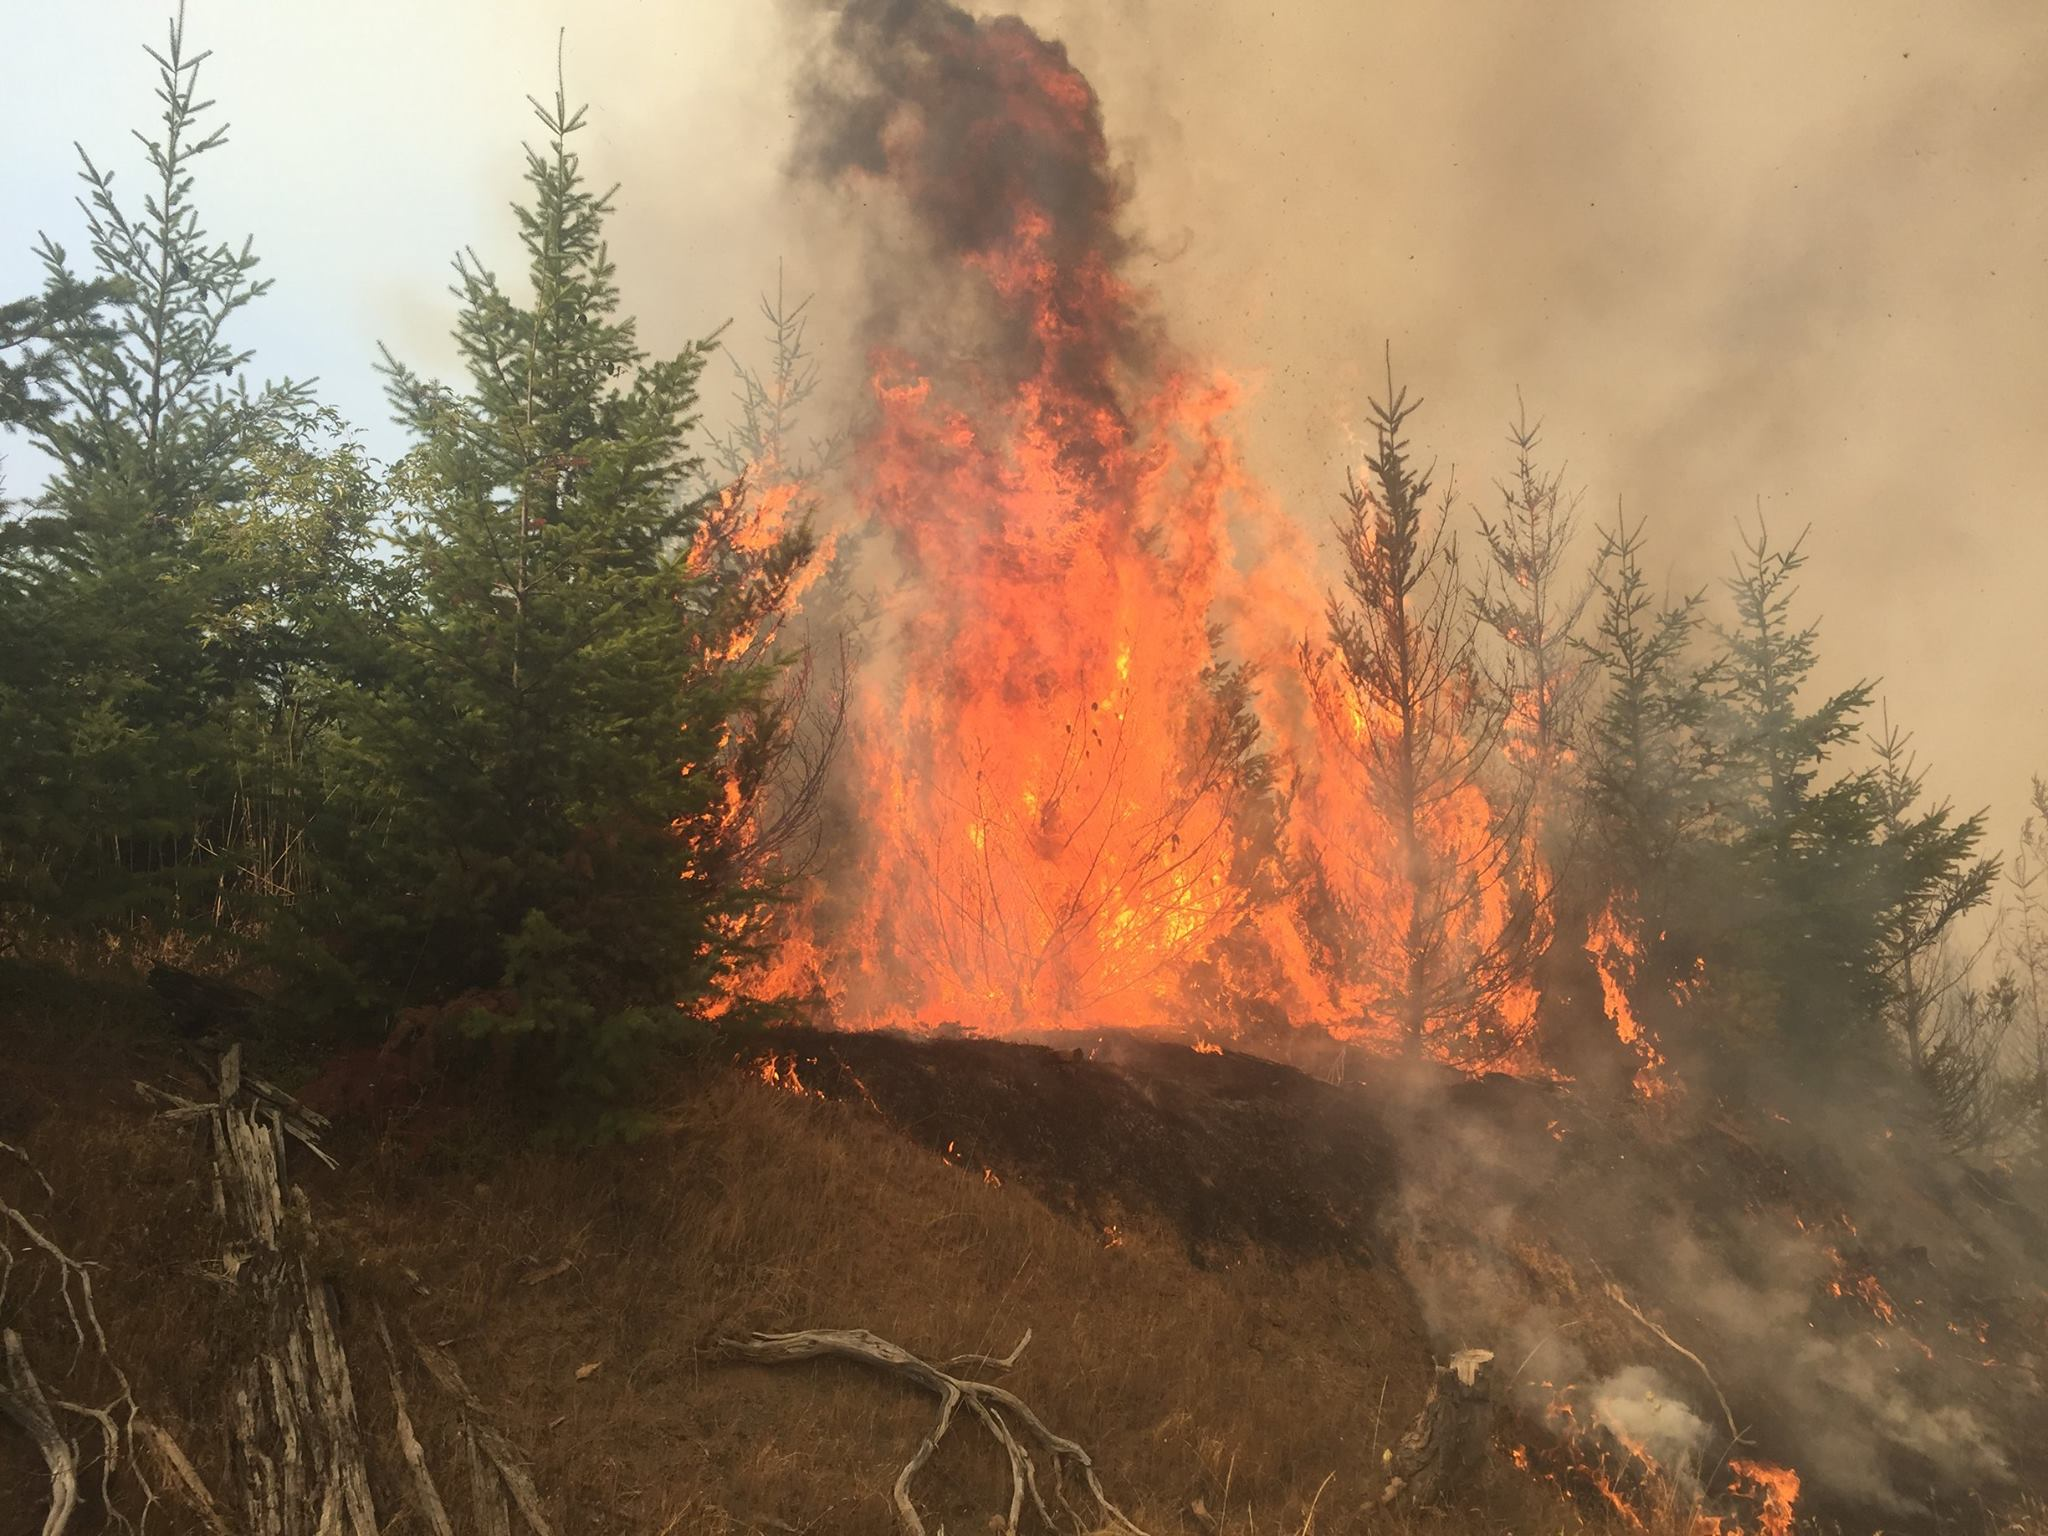 The Horse Prairie Fire was detected Saturday, August 26. People who live near the fire were told to evacuate on Tuesday. The cause is still under investigation.